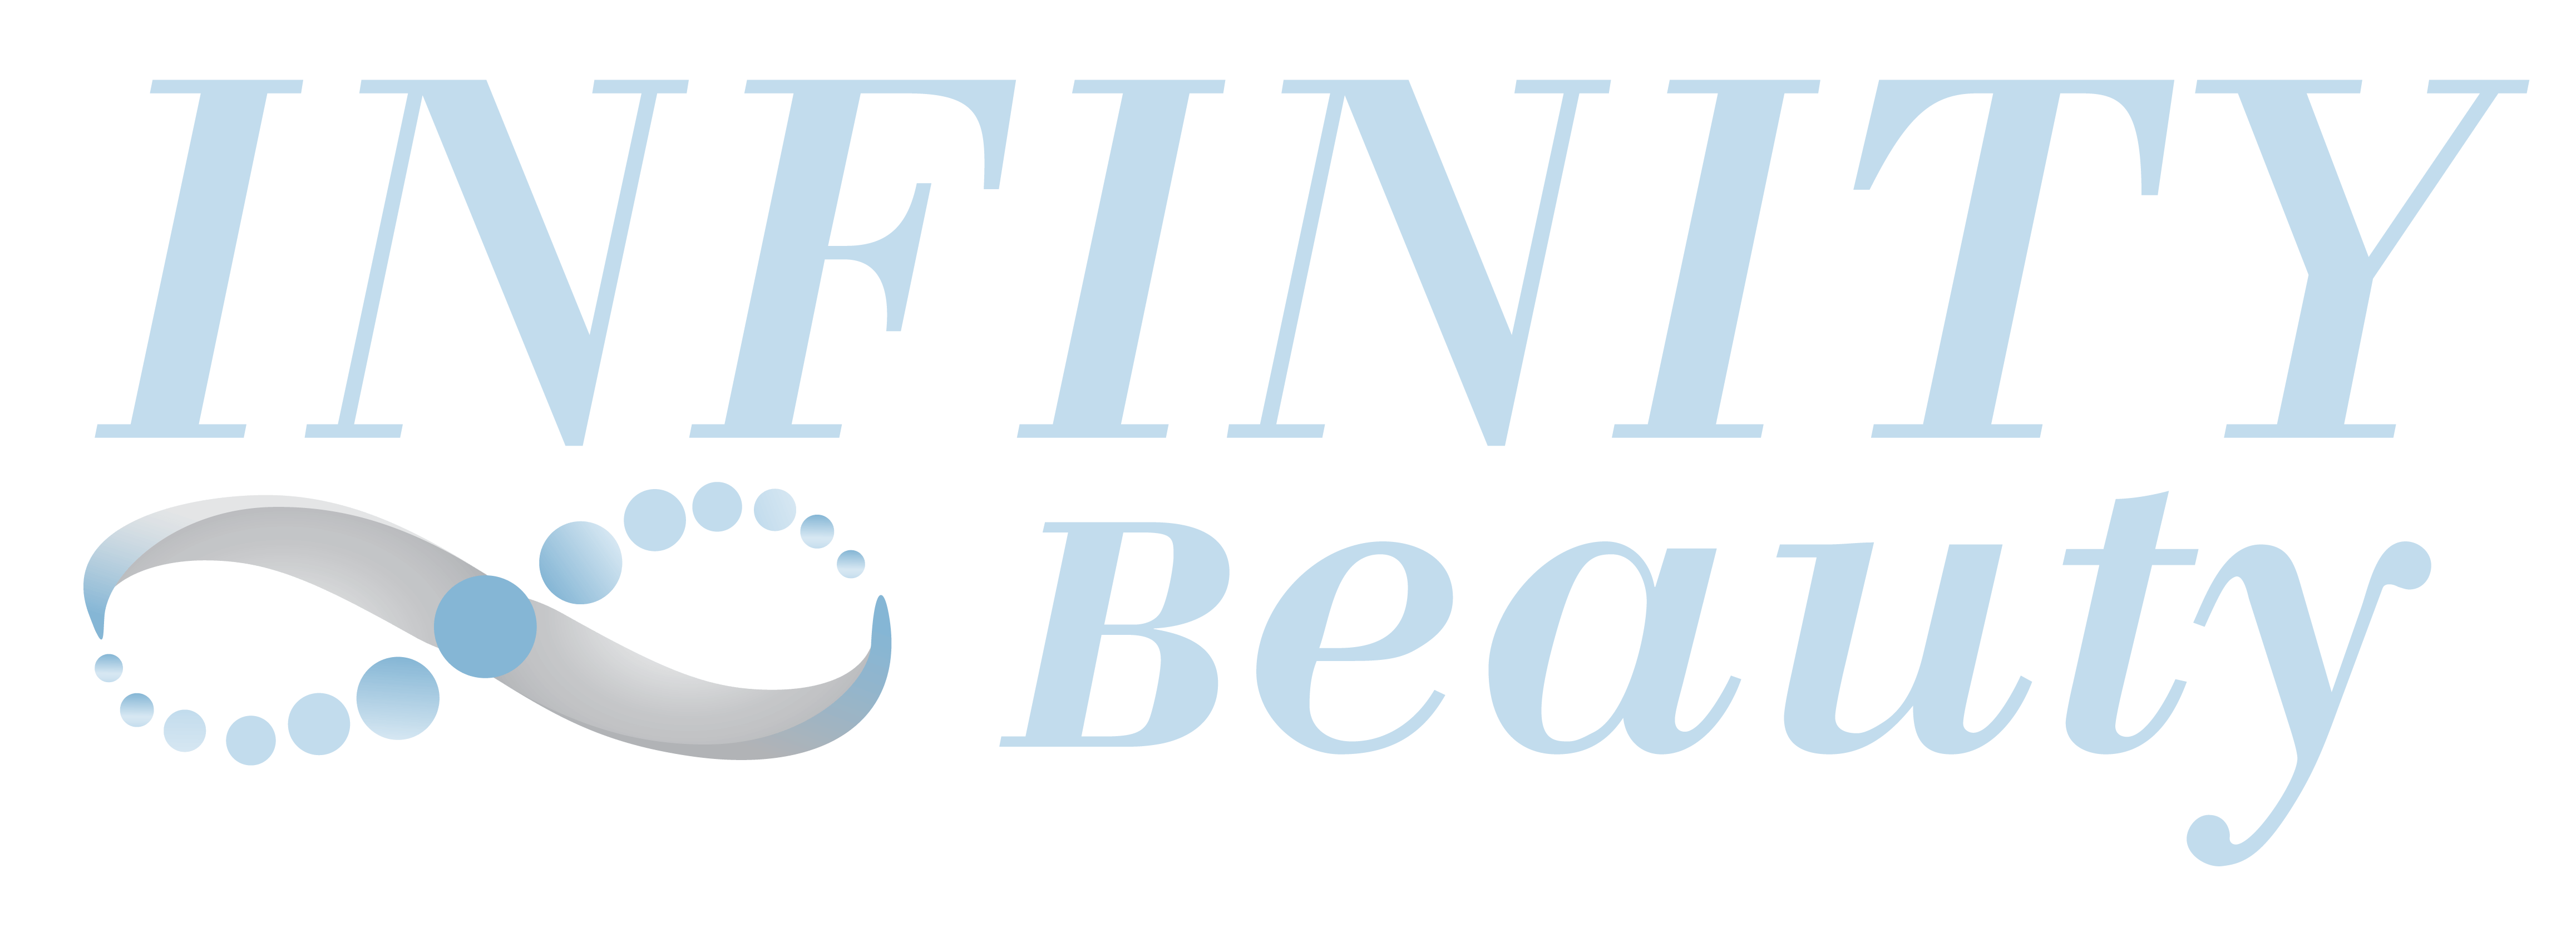 Infinity Beauty | Welcome to Infinity Beauty